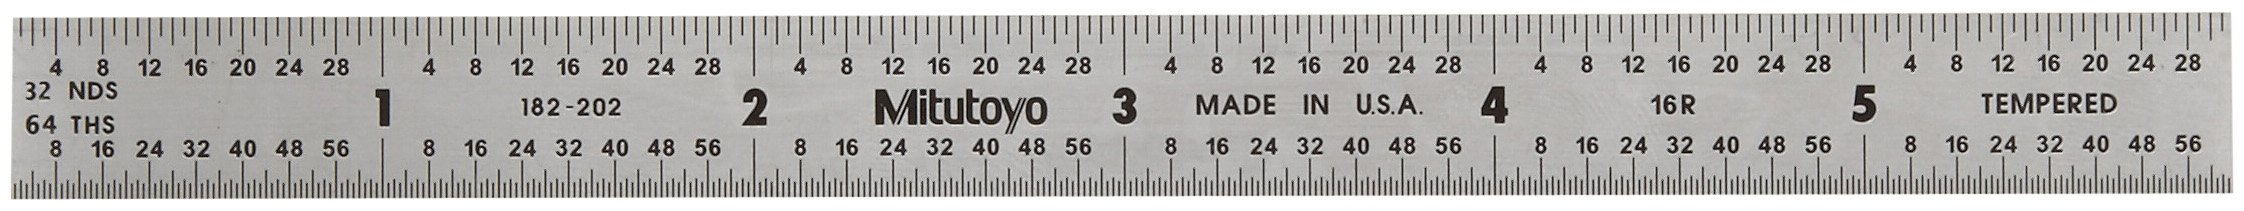 Mitutoyo 182-202, Steel Rule, 6'' (16R), (1/32, 1/64'', 1/50'', 1/100''), 1/64'' Thick X 1/2'' Wide, Satin Chrome Finish Tempered Stainless Steel